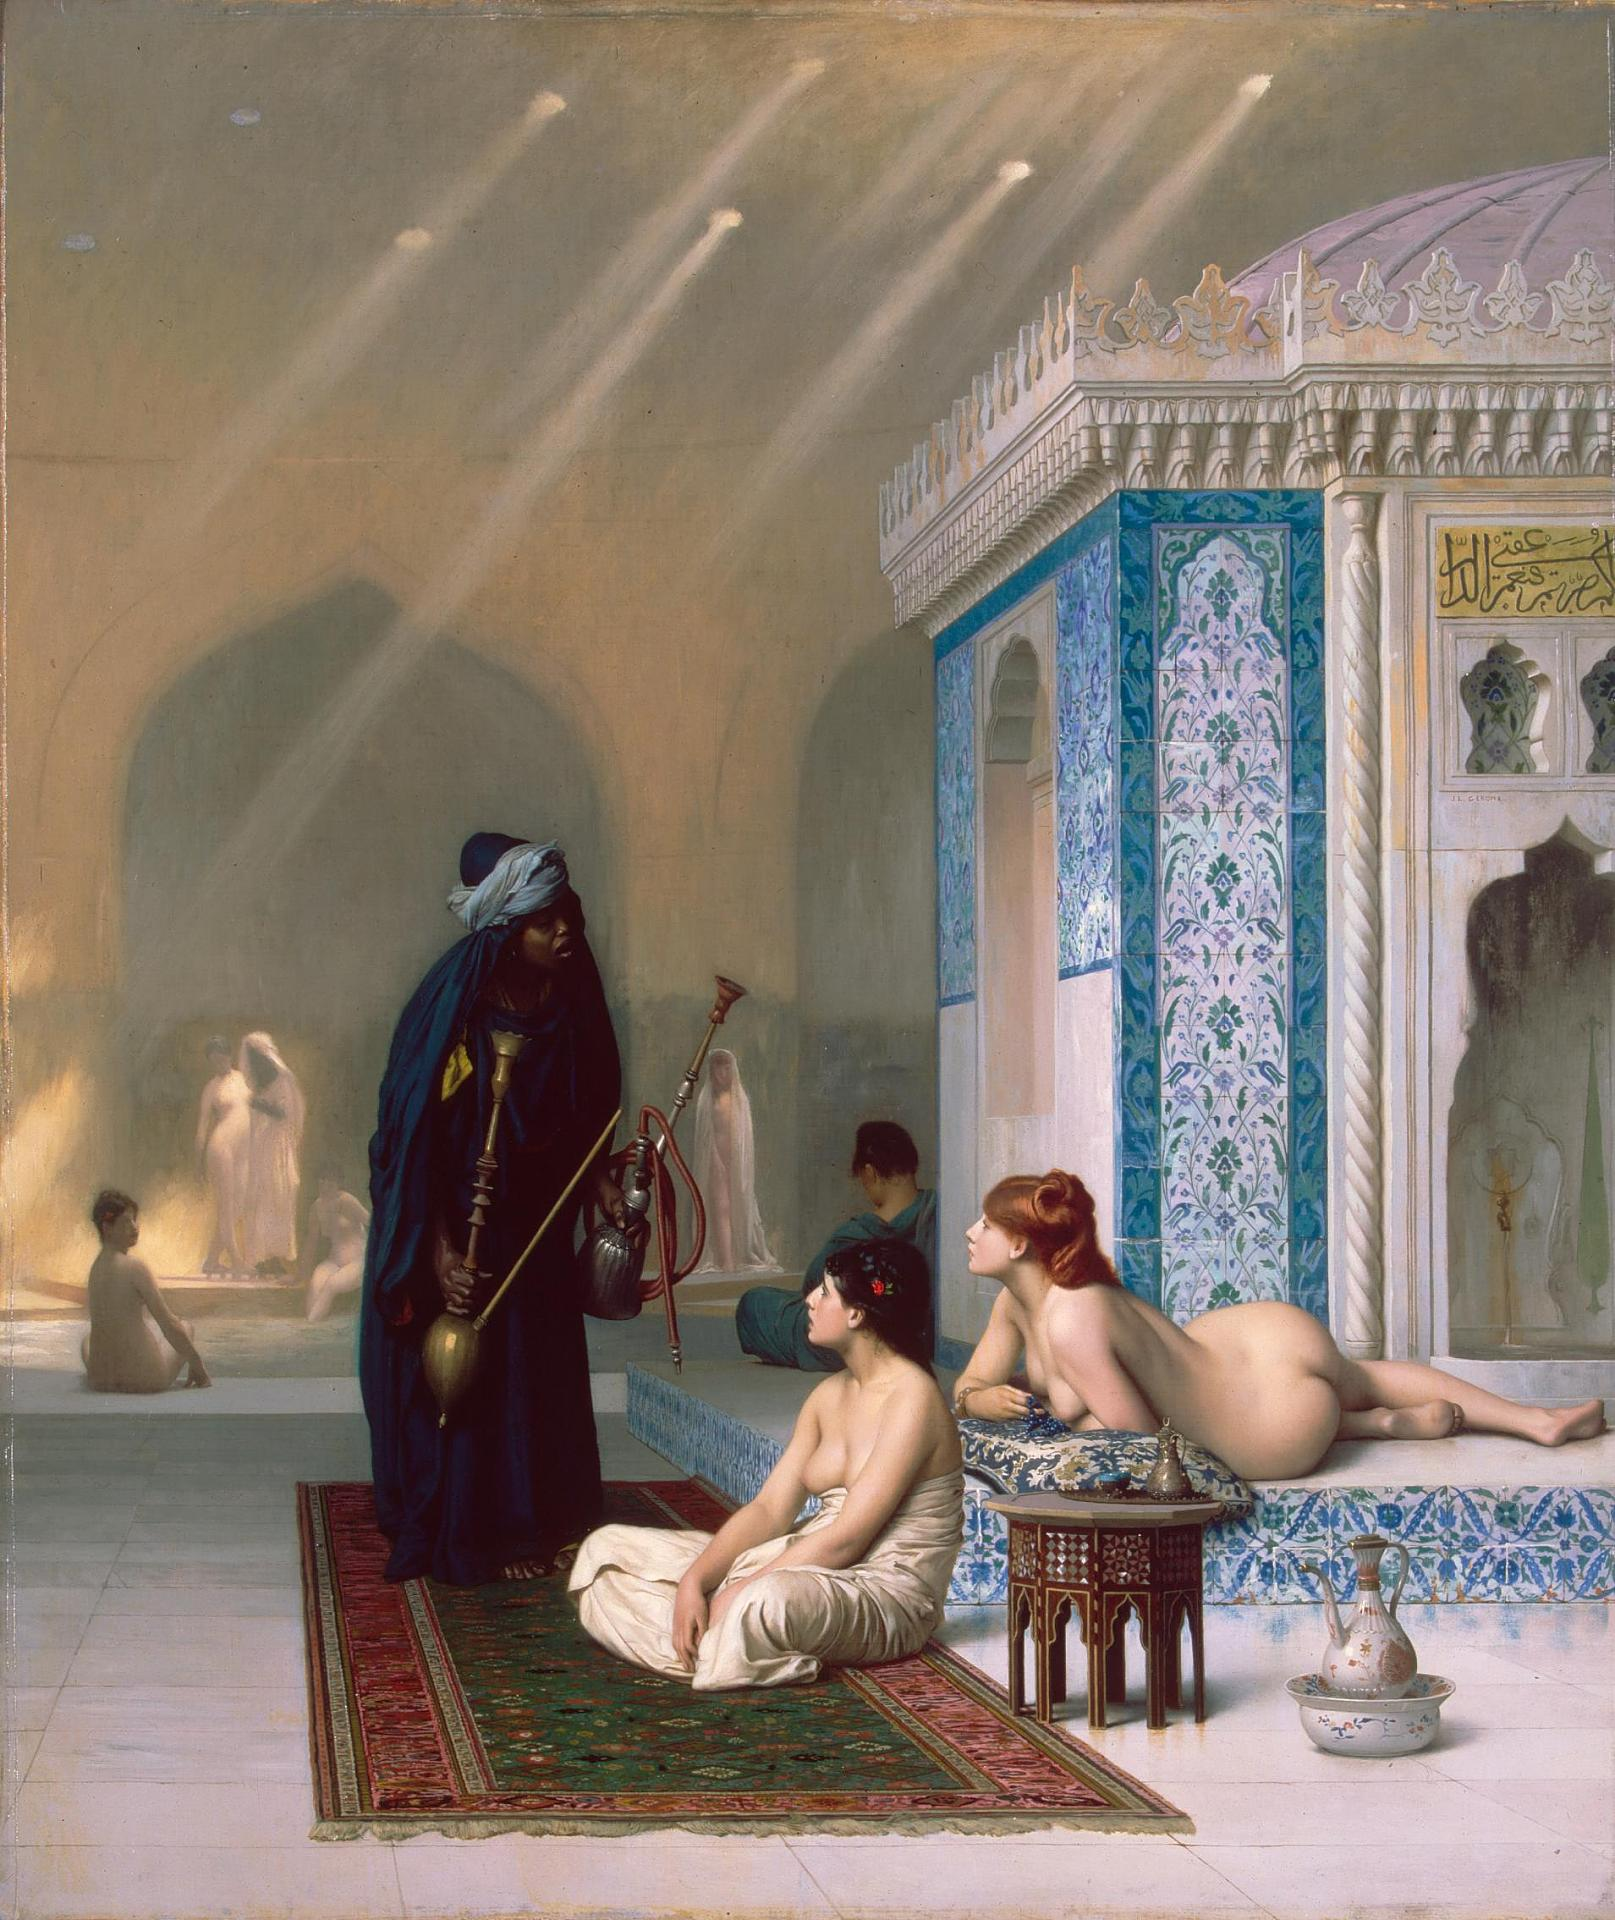 Pool In Harem - Gérôme, Jean-Léon. (1824-1904)